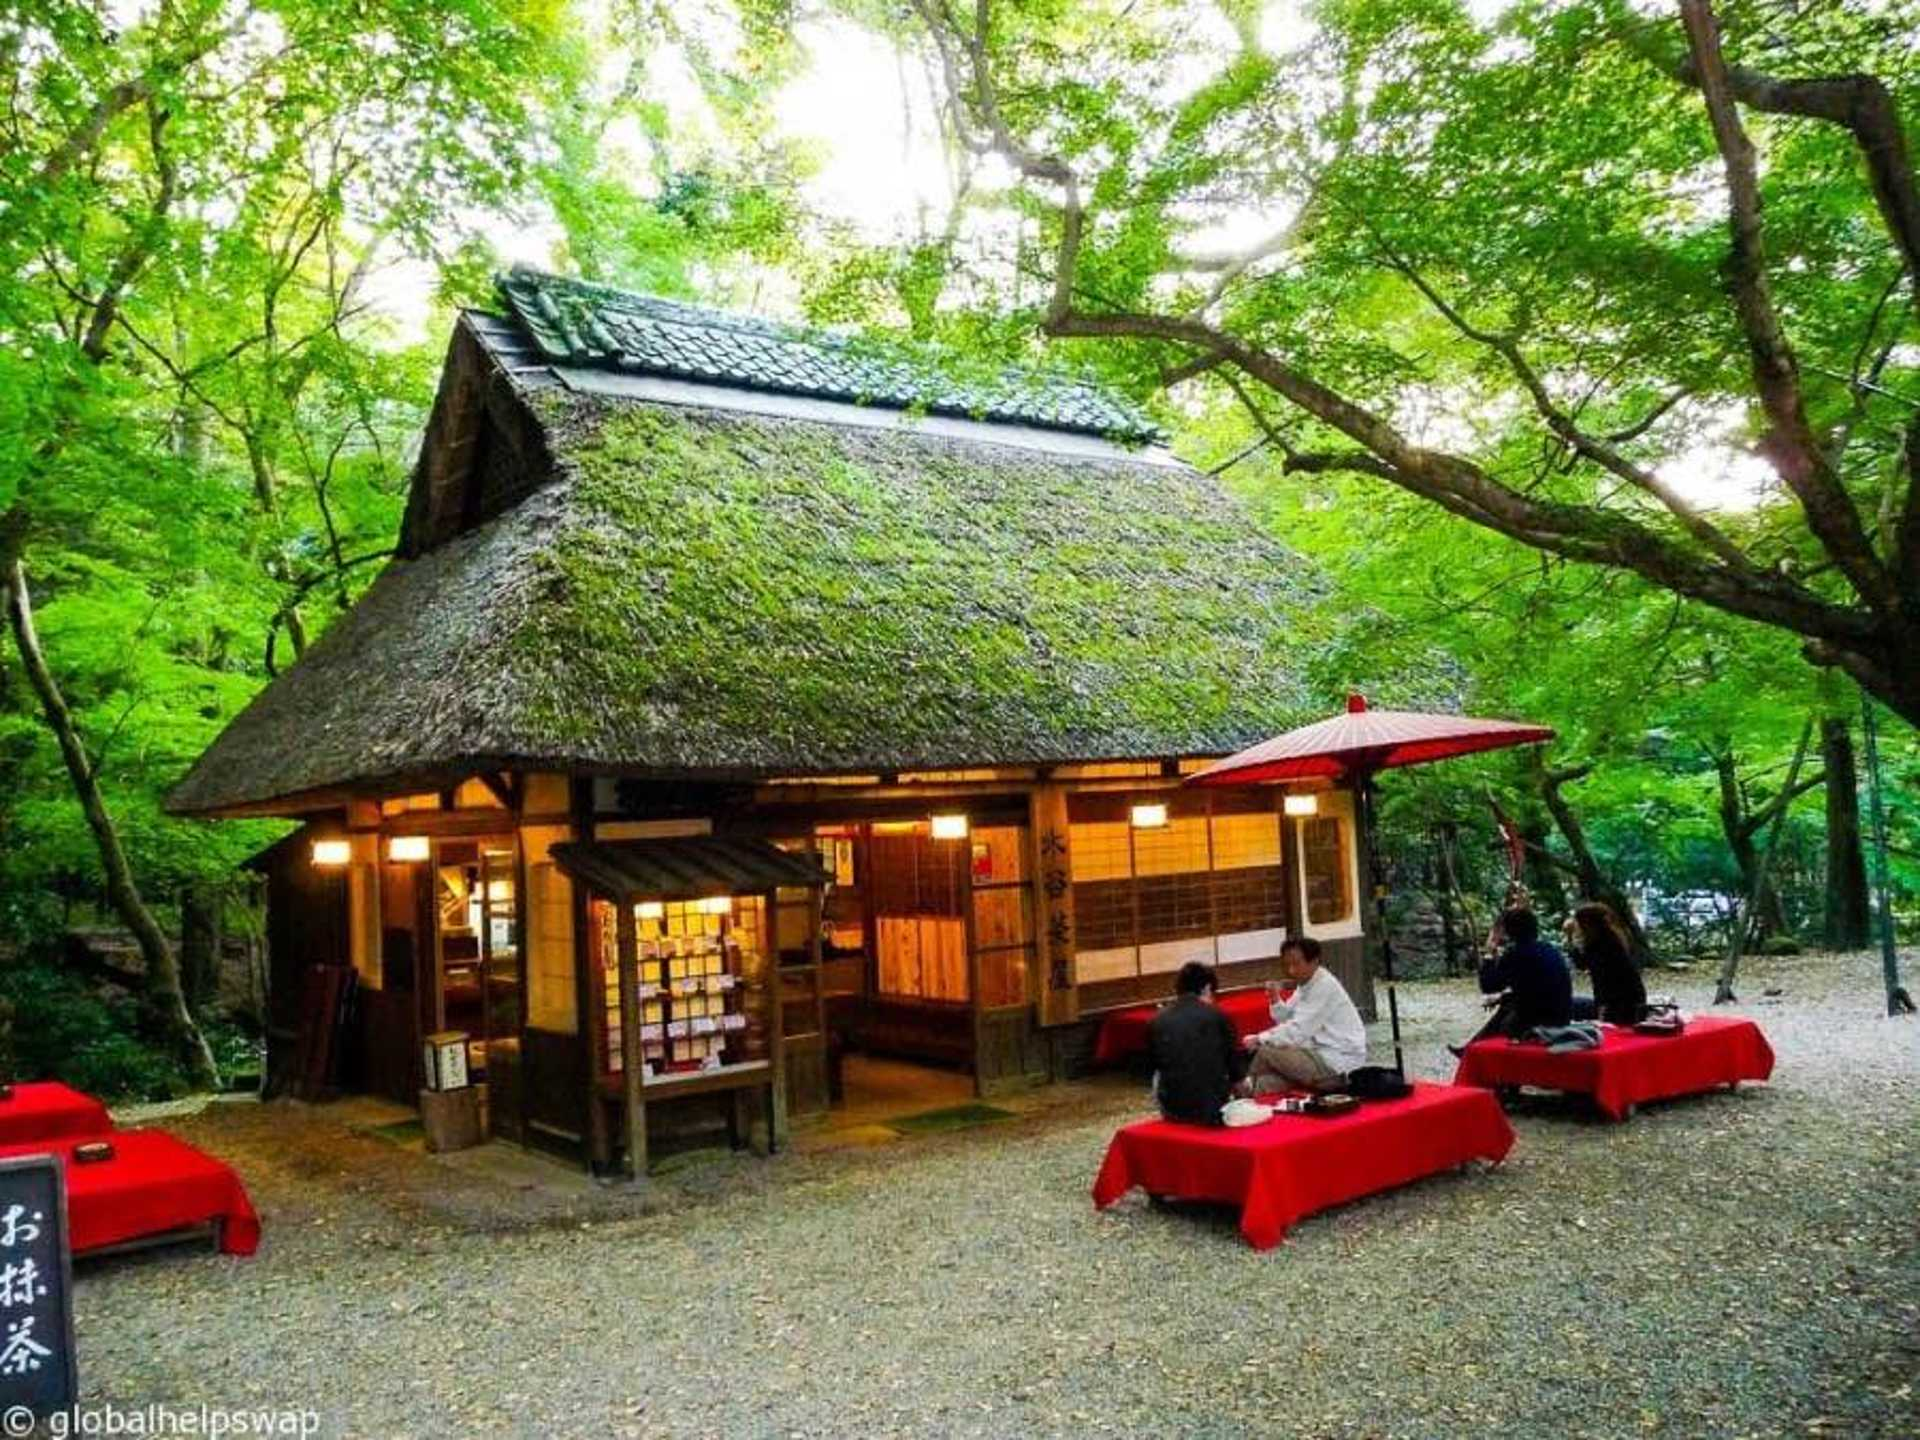 Chill with the locals at Mount Wakakusayama